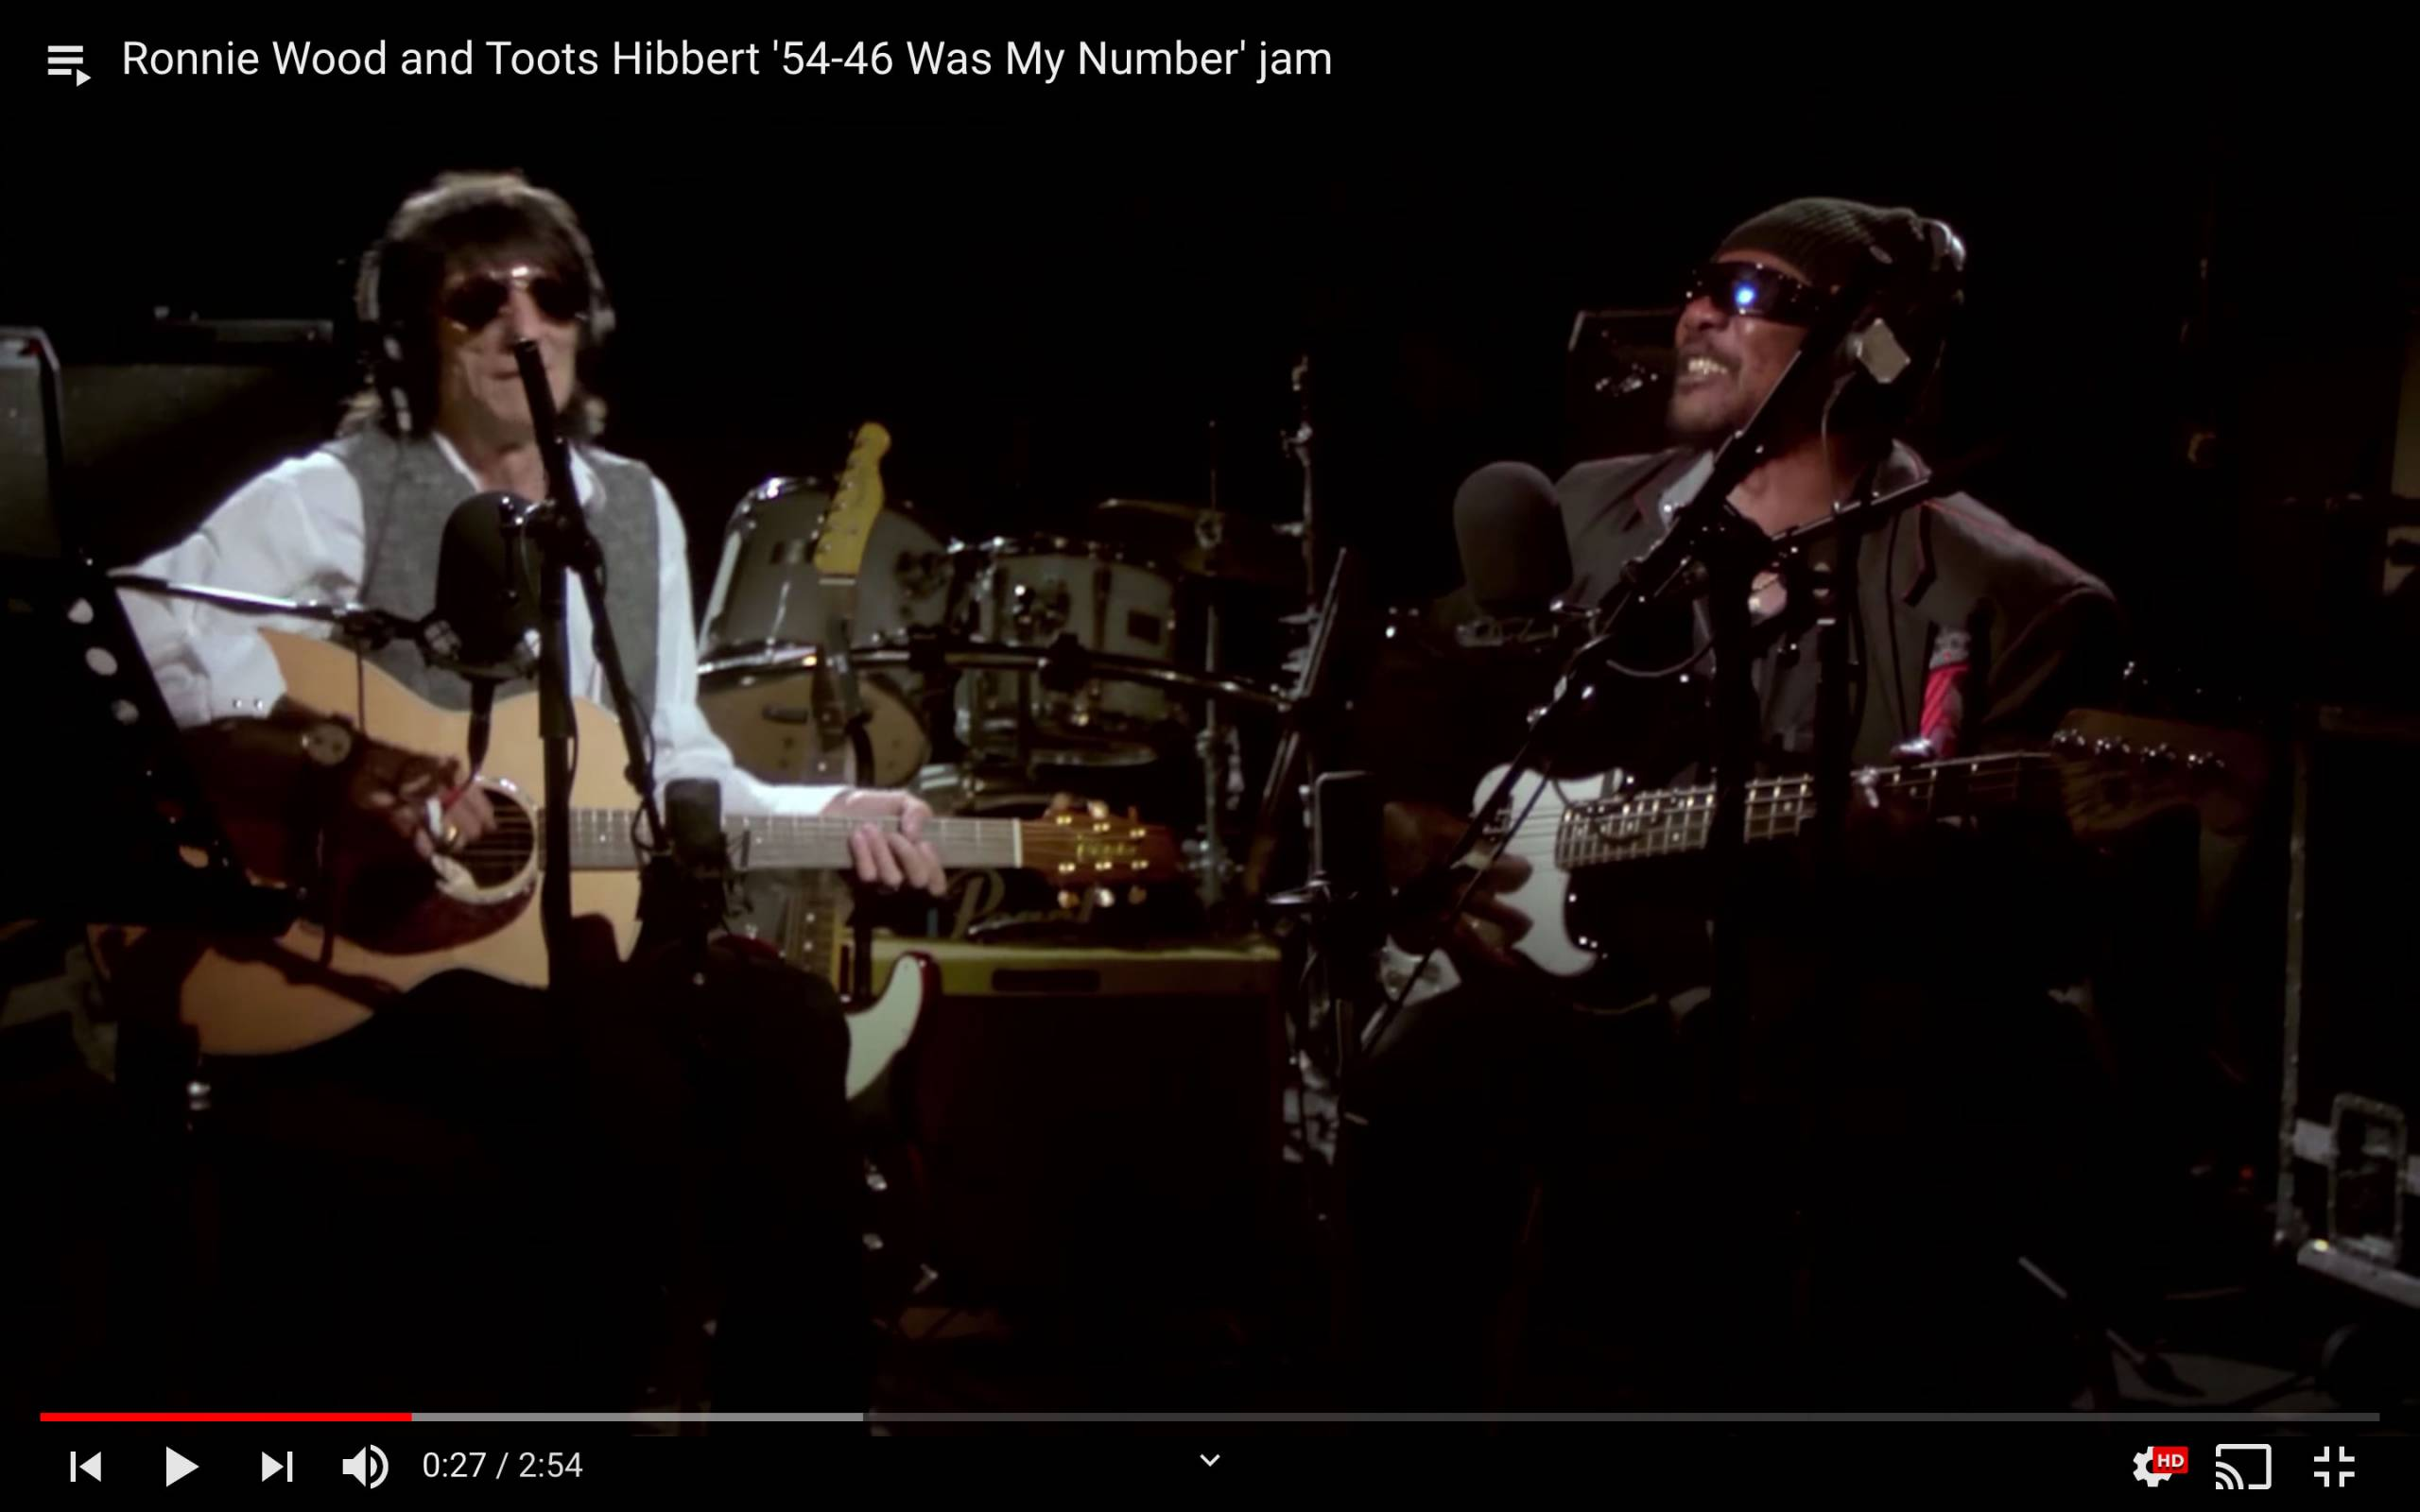 Ronnie Wood and Toots Hibbert '54-46 Was My Number' jam